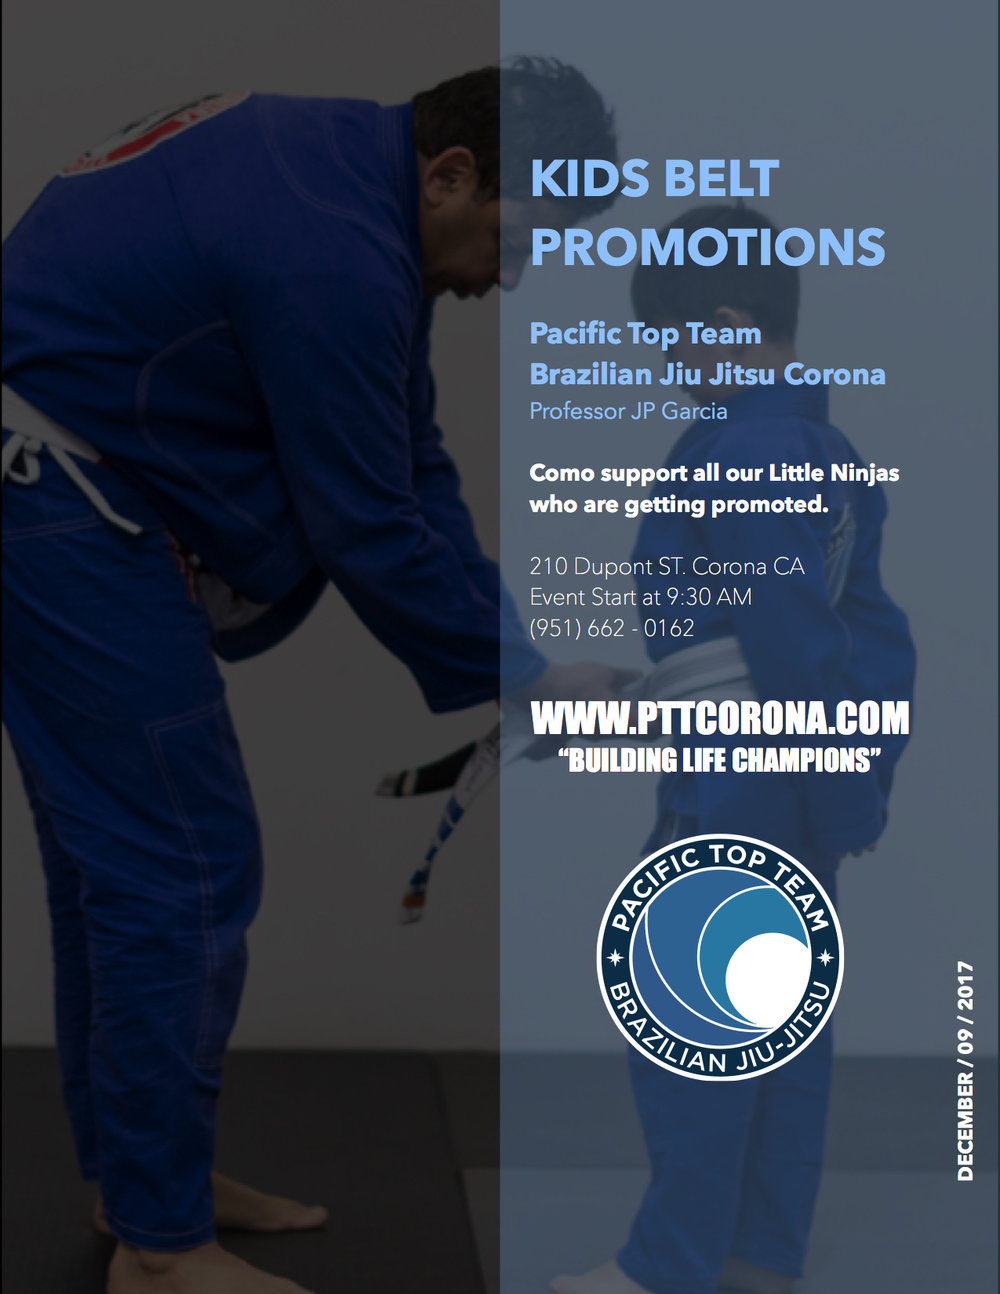 Attention parents! The belt test and Graduation ceremony are scheduled to take place on  Friday, December 9th, from 9:30am to 11am .  Kids, Little Ninjas, Juniors and Teens students will be tested in the same event.  Be sure to invite your friends and family to this important event that recognizes your kids hard work and dedication to the art of Jiu-Jitsu. This is an opportunity for all our Little champions to come together and support those who are getting tested to the next belt rank. Your presence at this event is important to us and your child's teammates!